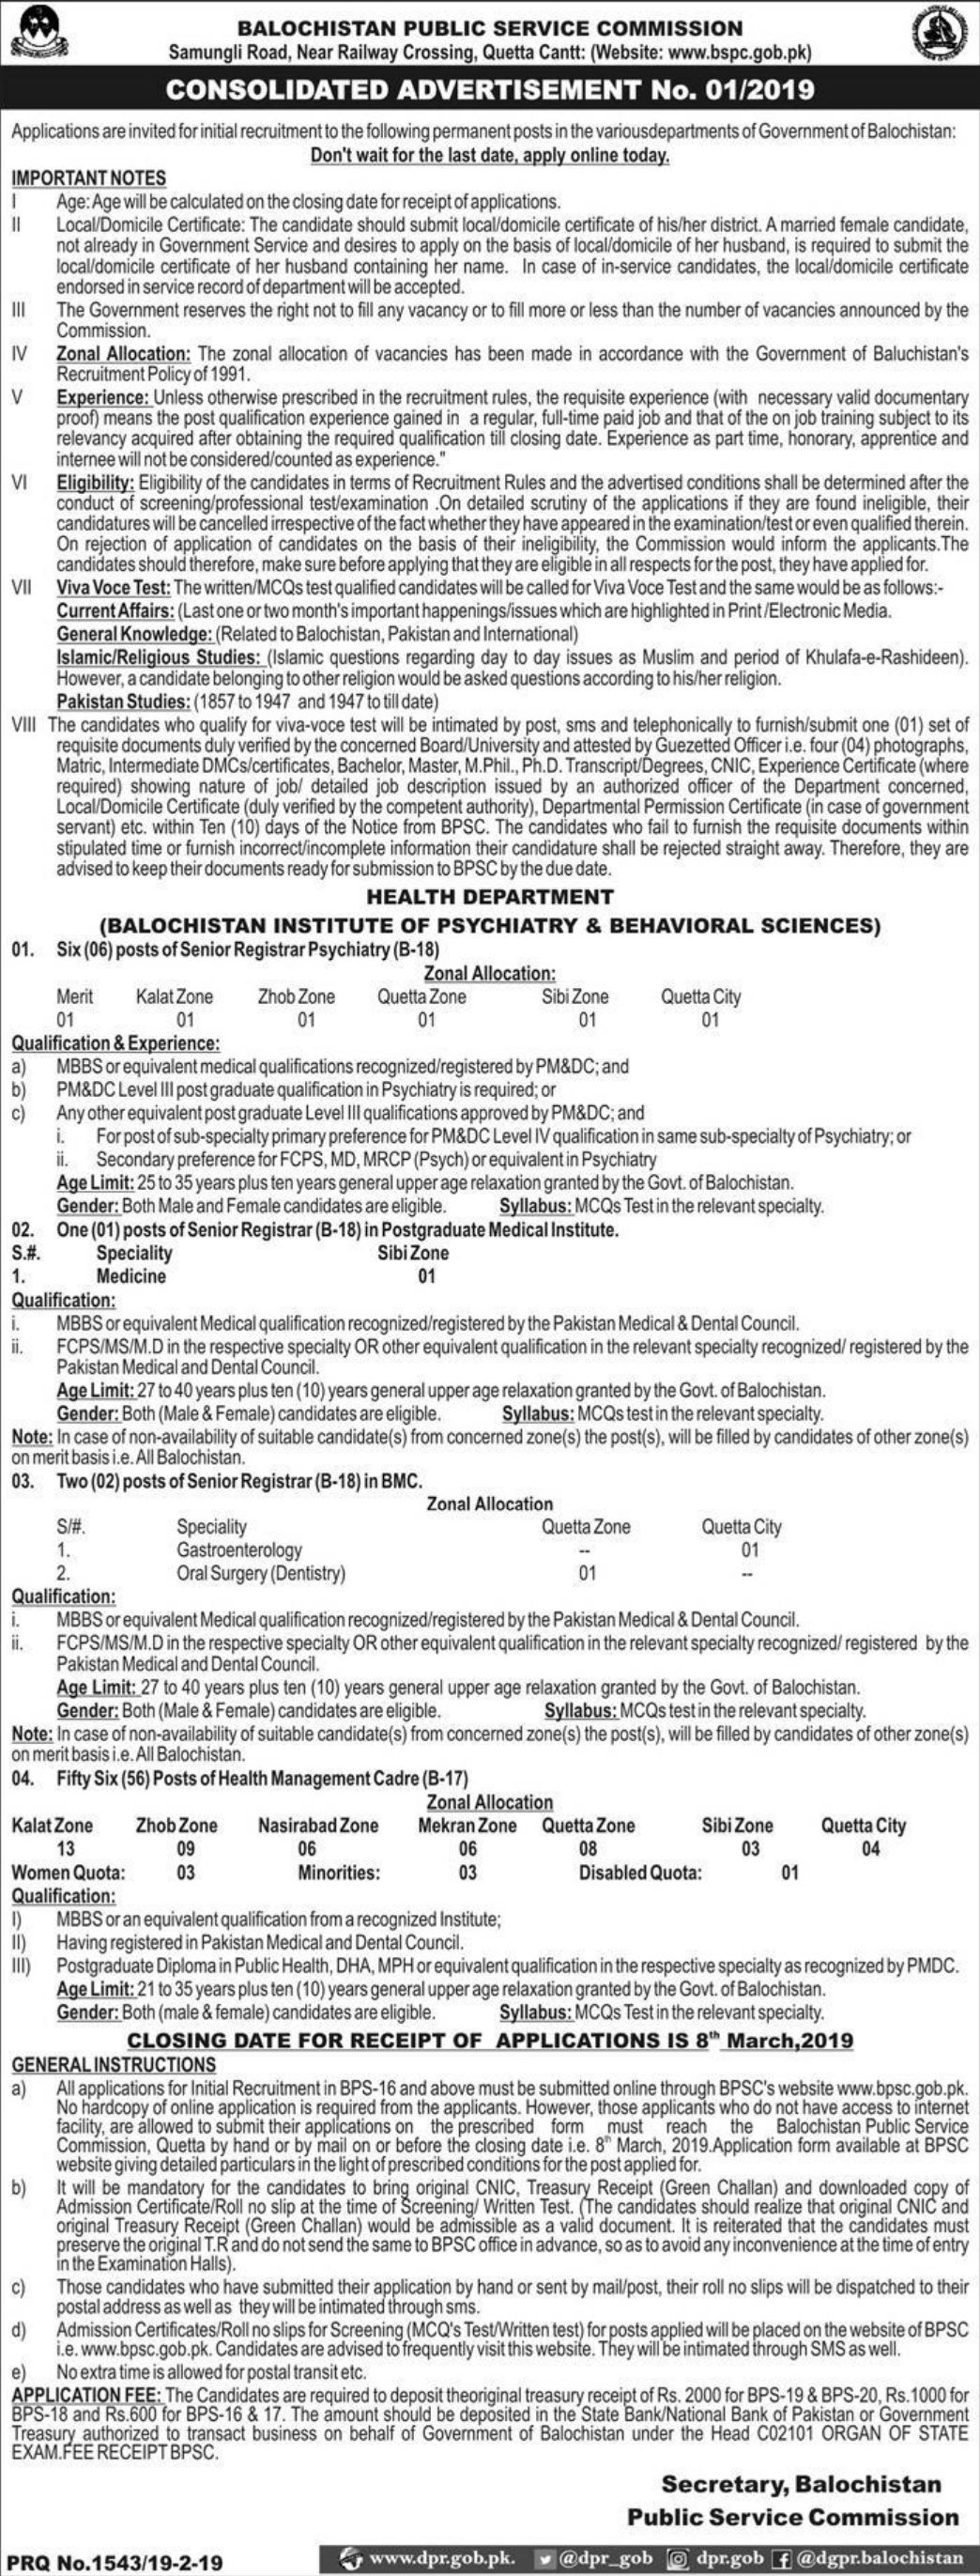 BPSC Jobs 2019 Latest Balochistan Public Service Commission